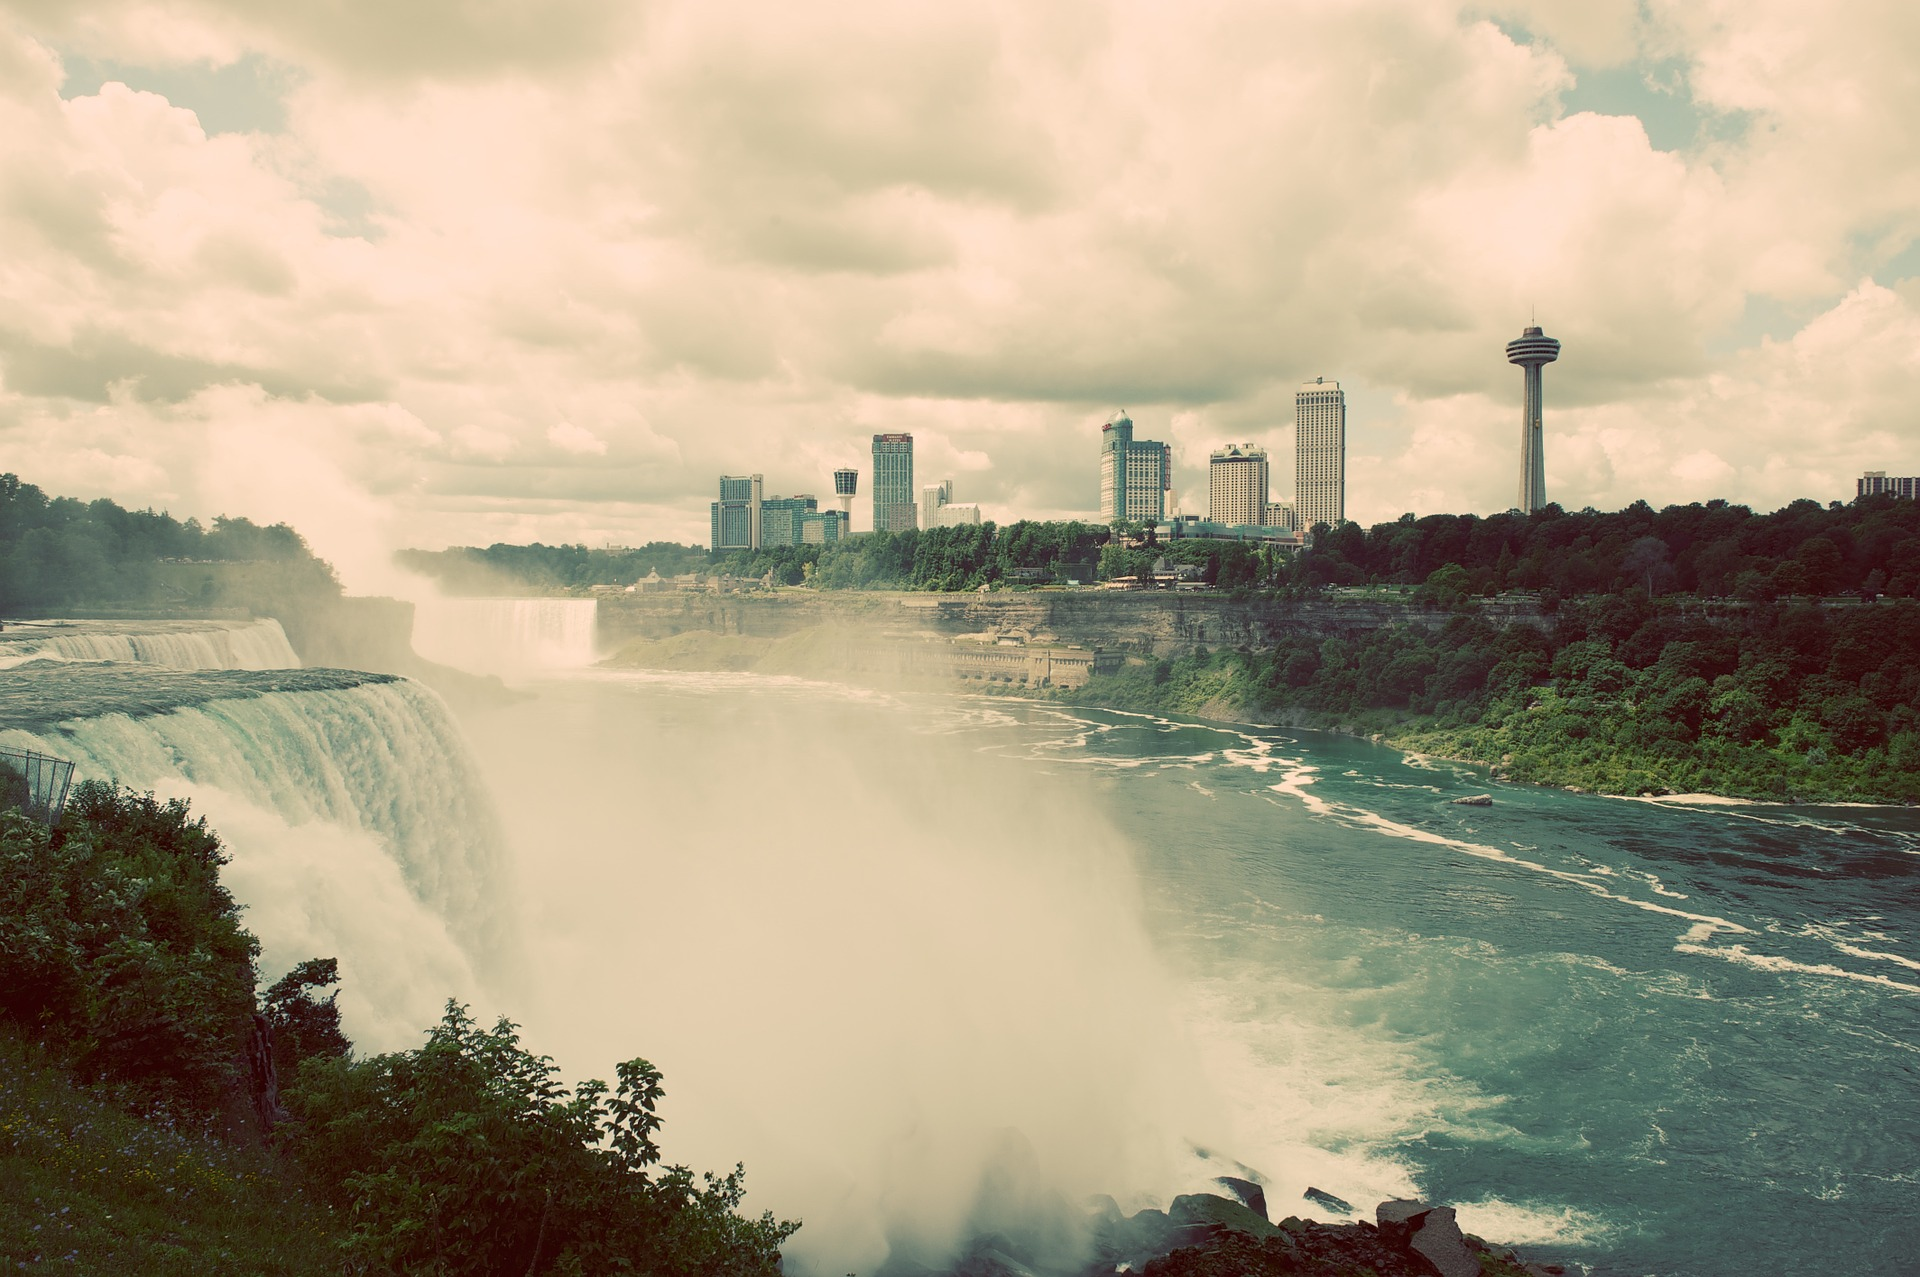 View of Buffalo, New York - Things to do in Buffalo, New York